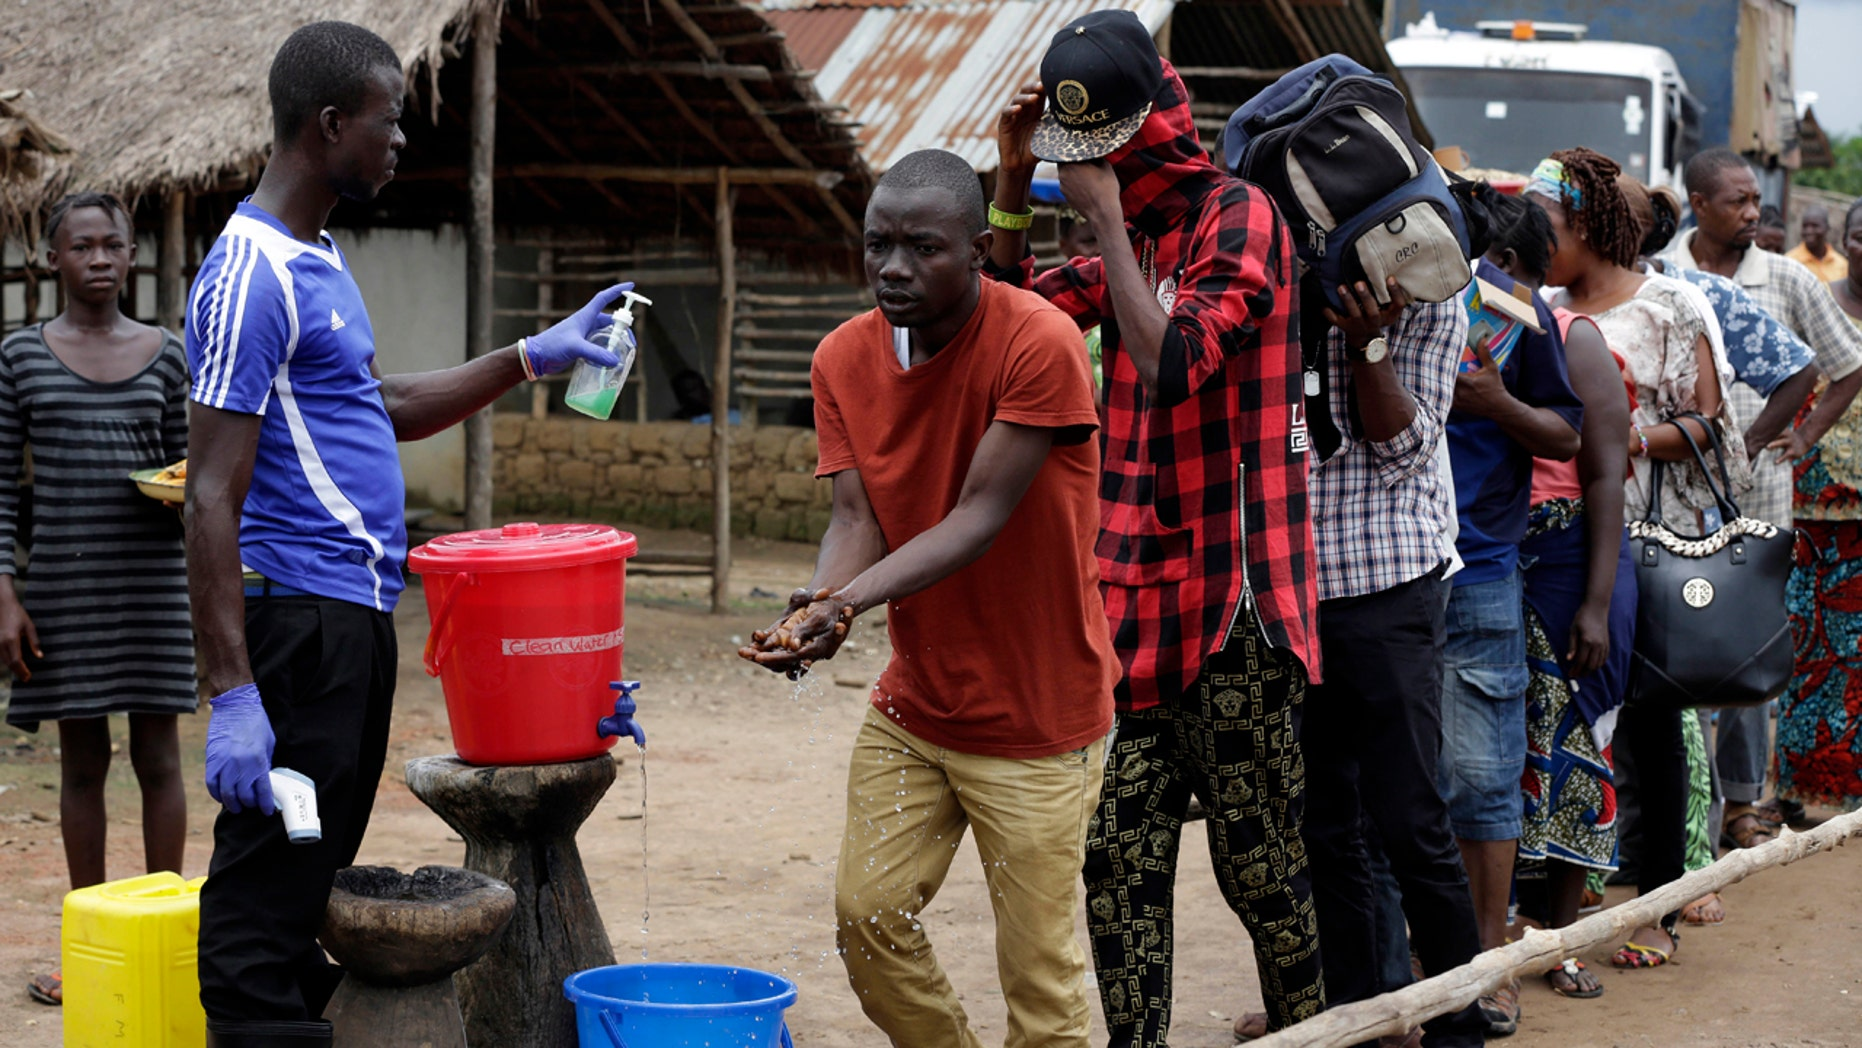 FILE-In this file photo taken Wednesday, Aug. 12, 2015, a man checks people's temperature and helps to wash their hands as they leave an Ebola quarantined area on the outskirts of Freetown, Sierra Leone. (AP Photo/Sunday Alamba, File)